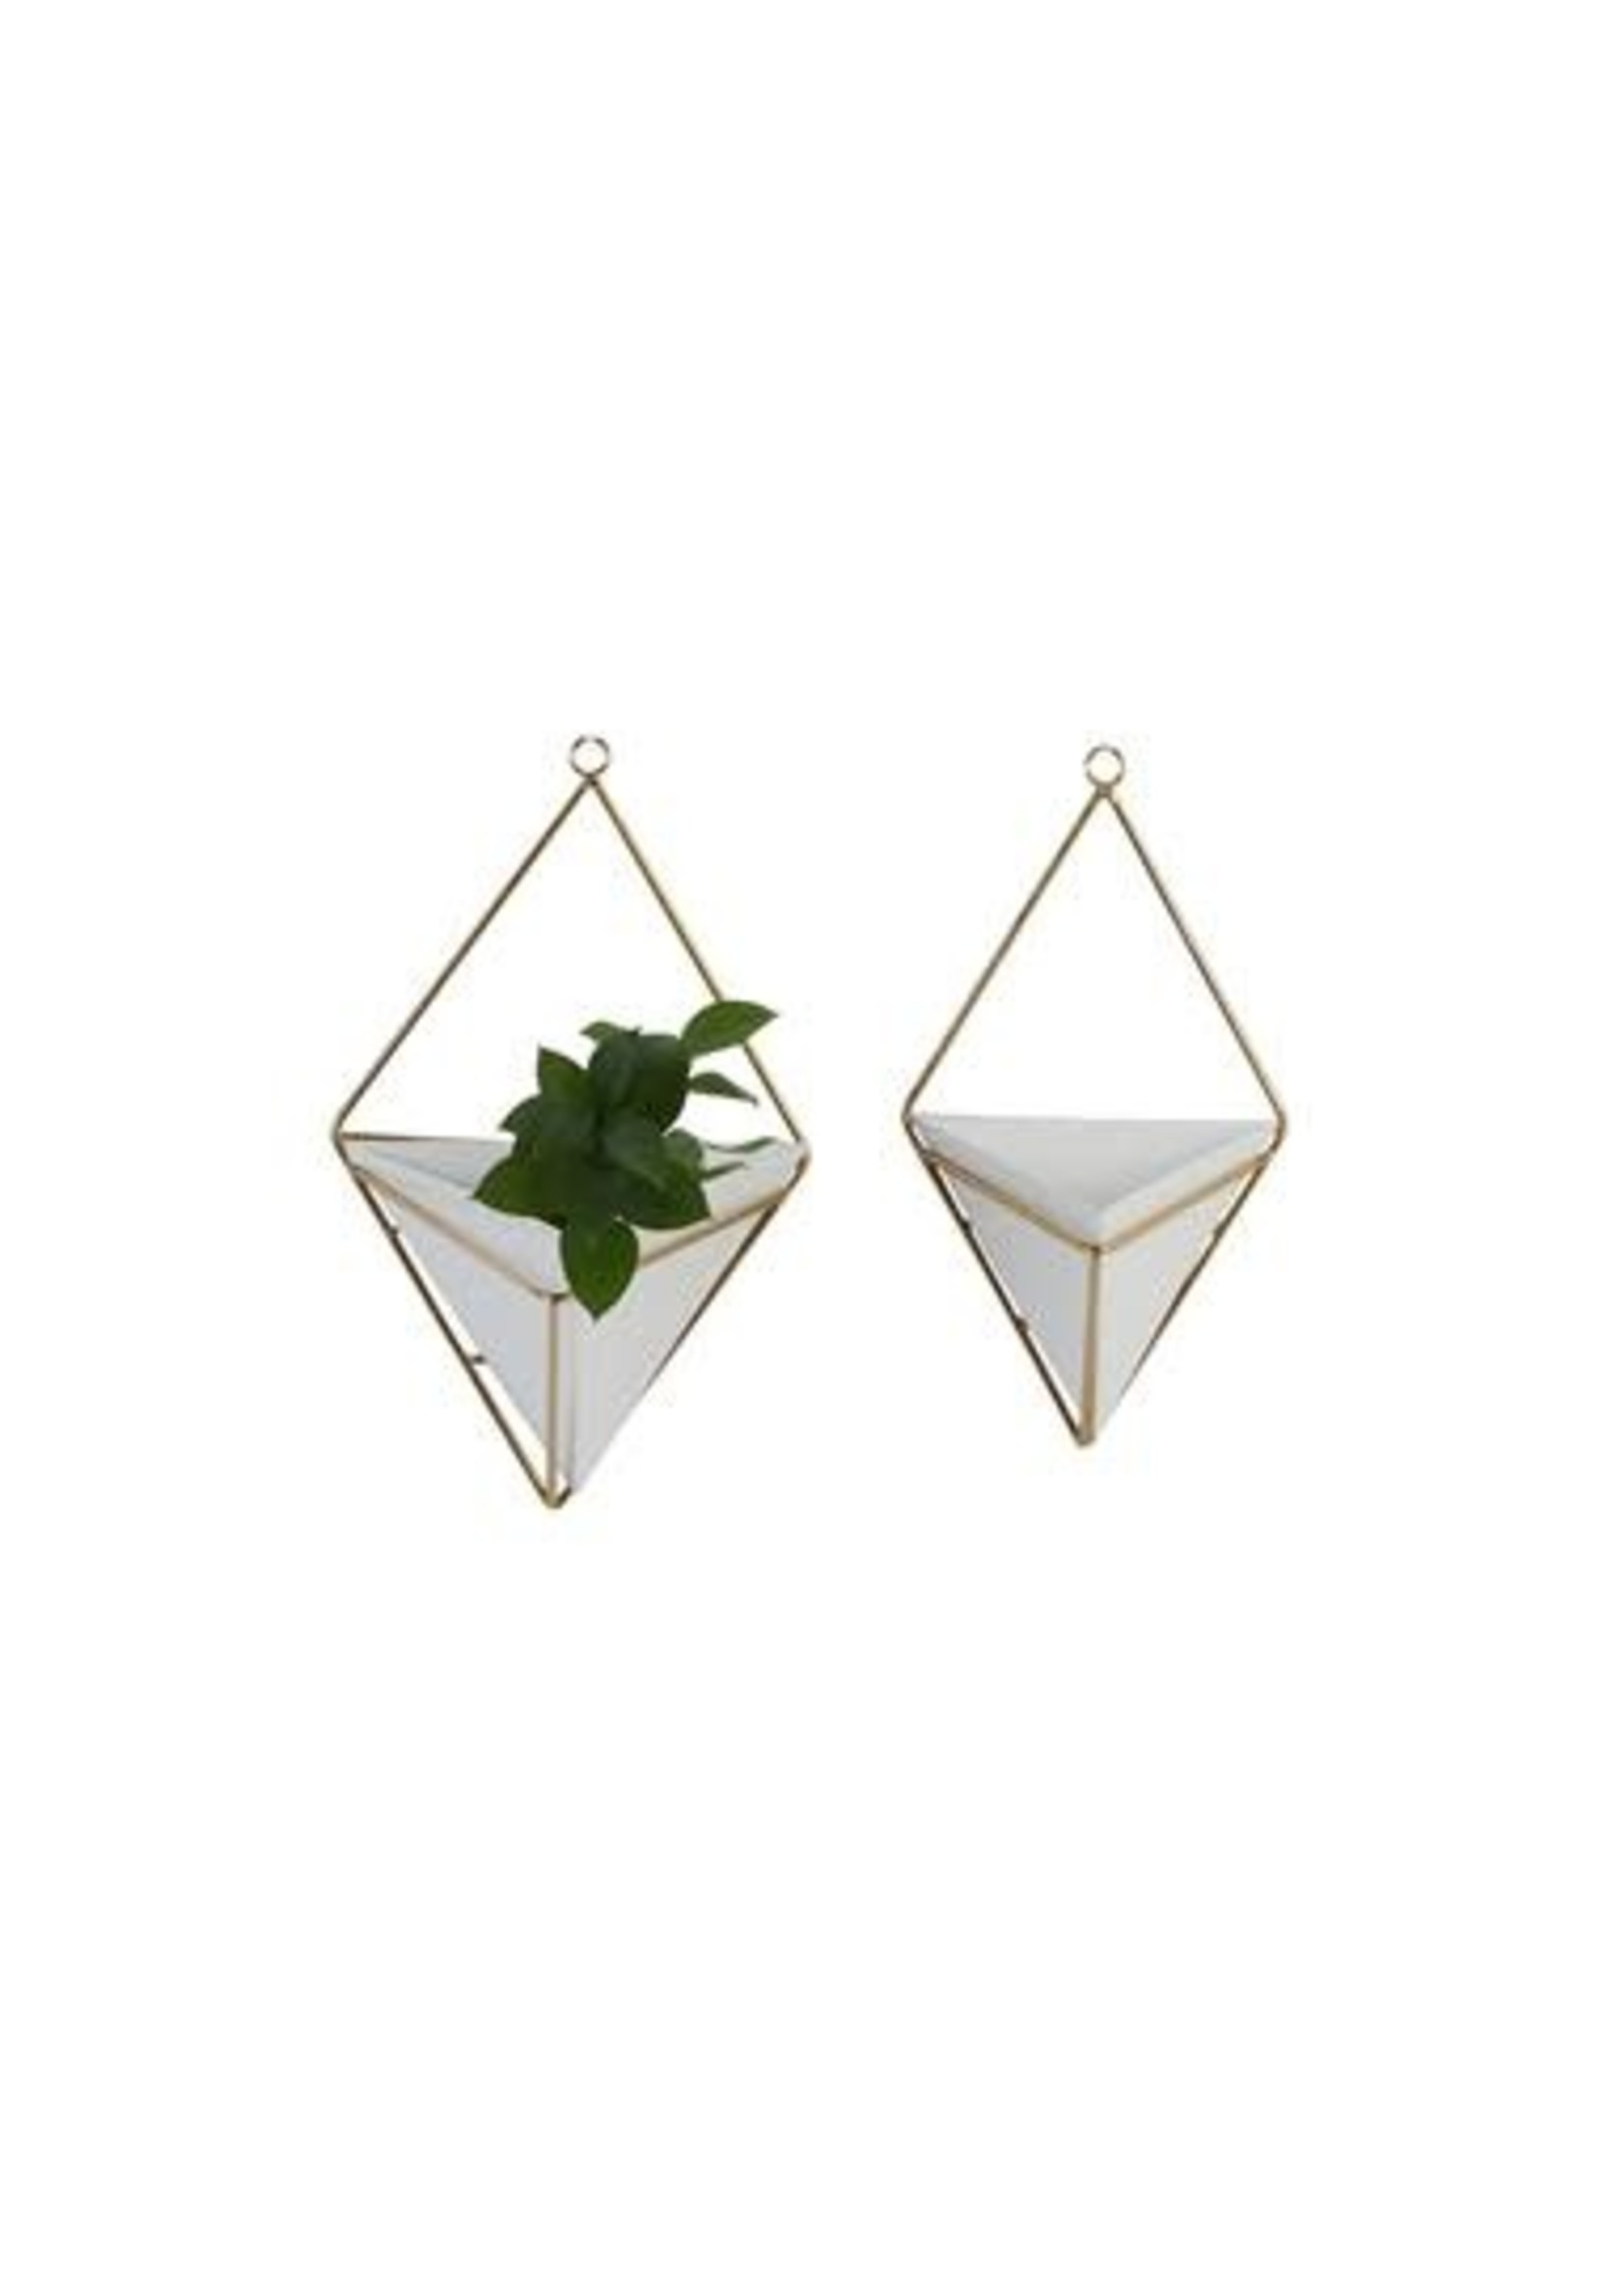 Small Gold White Planters set of 2 small